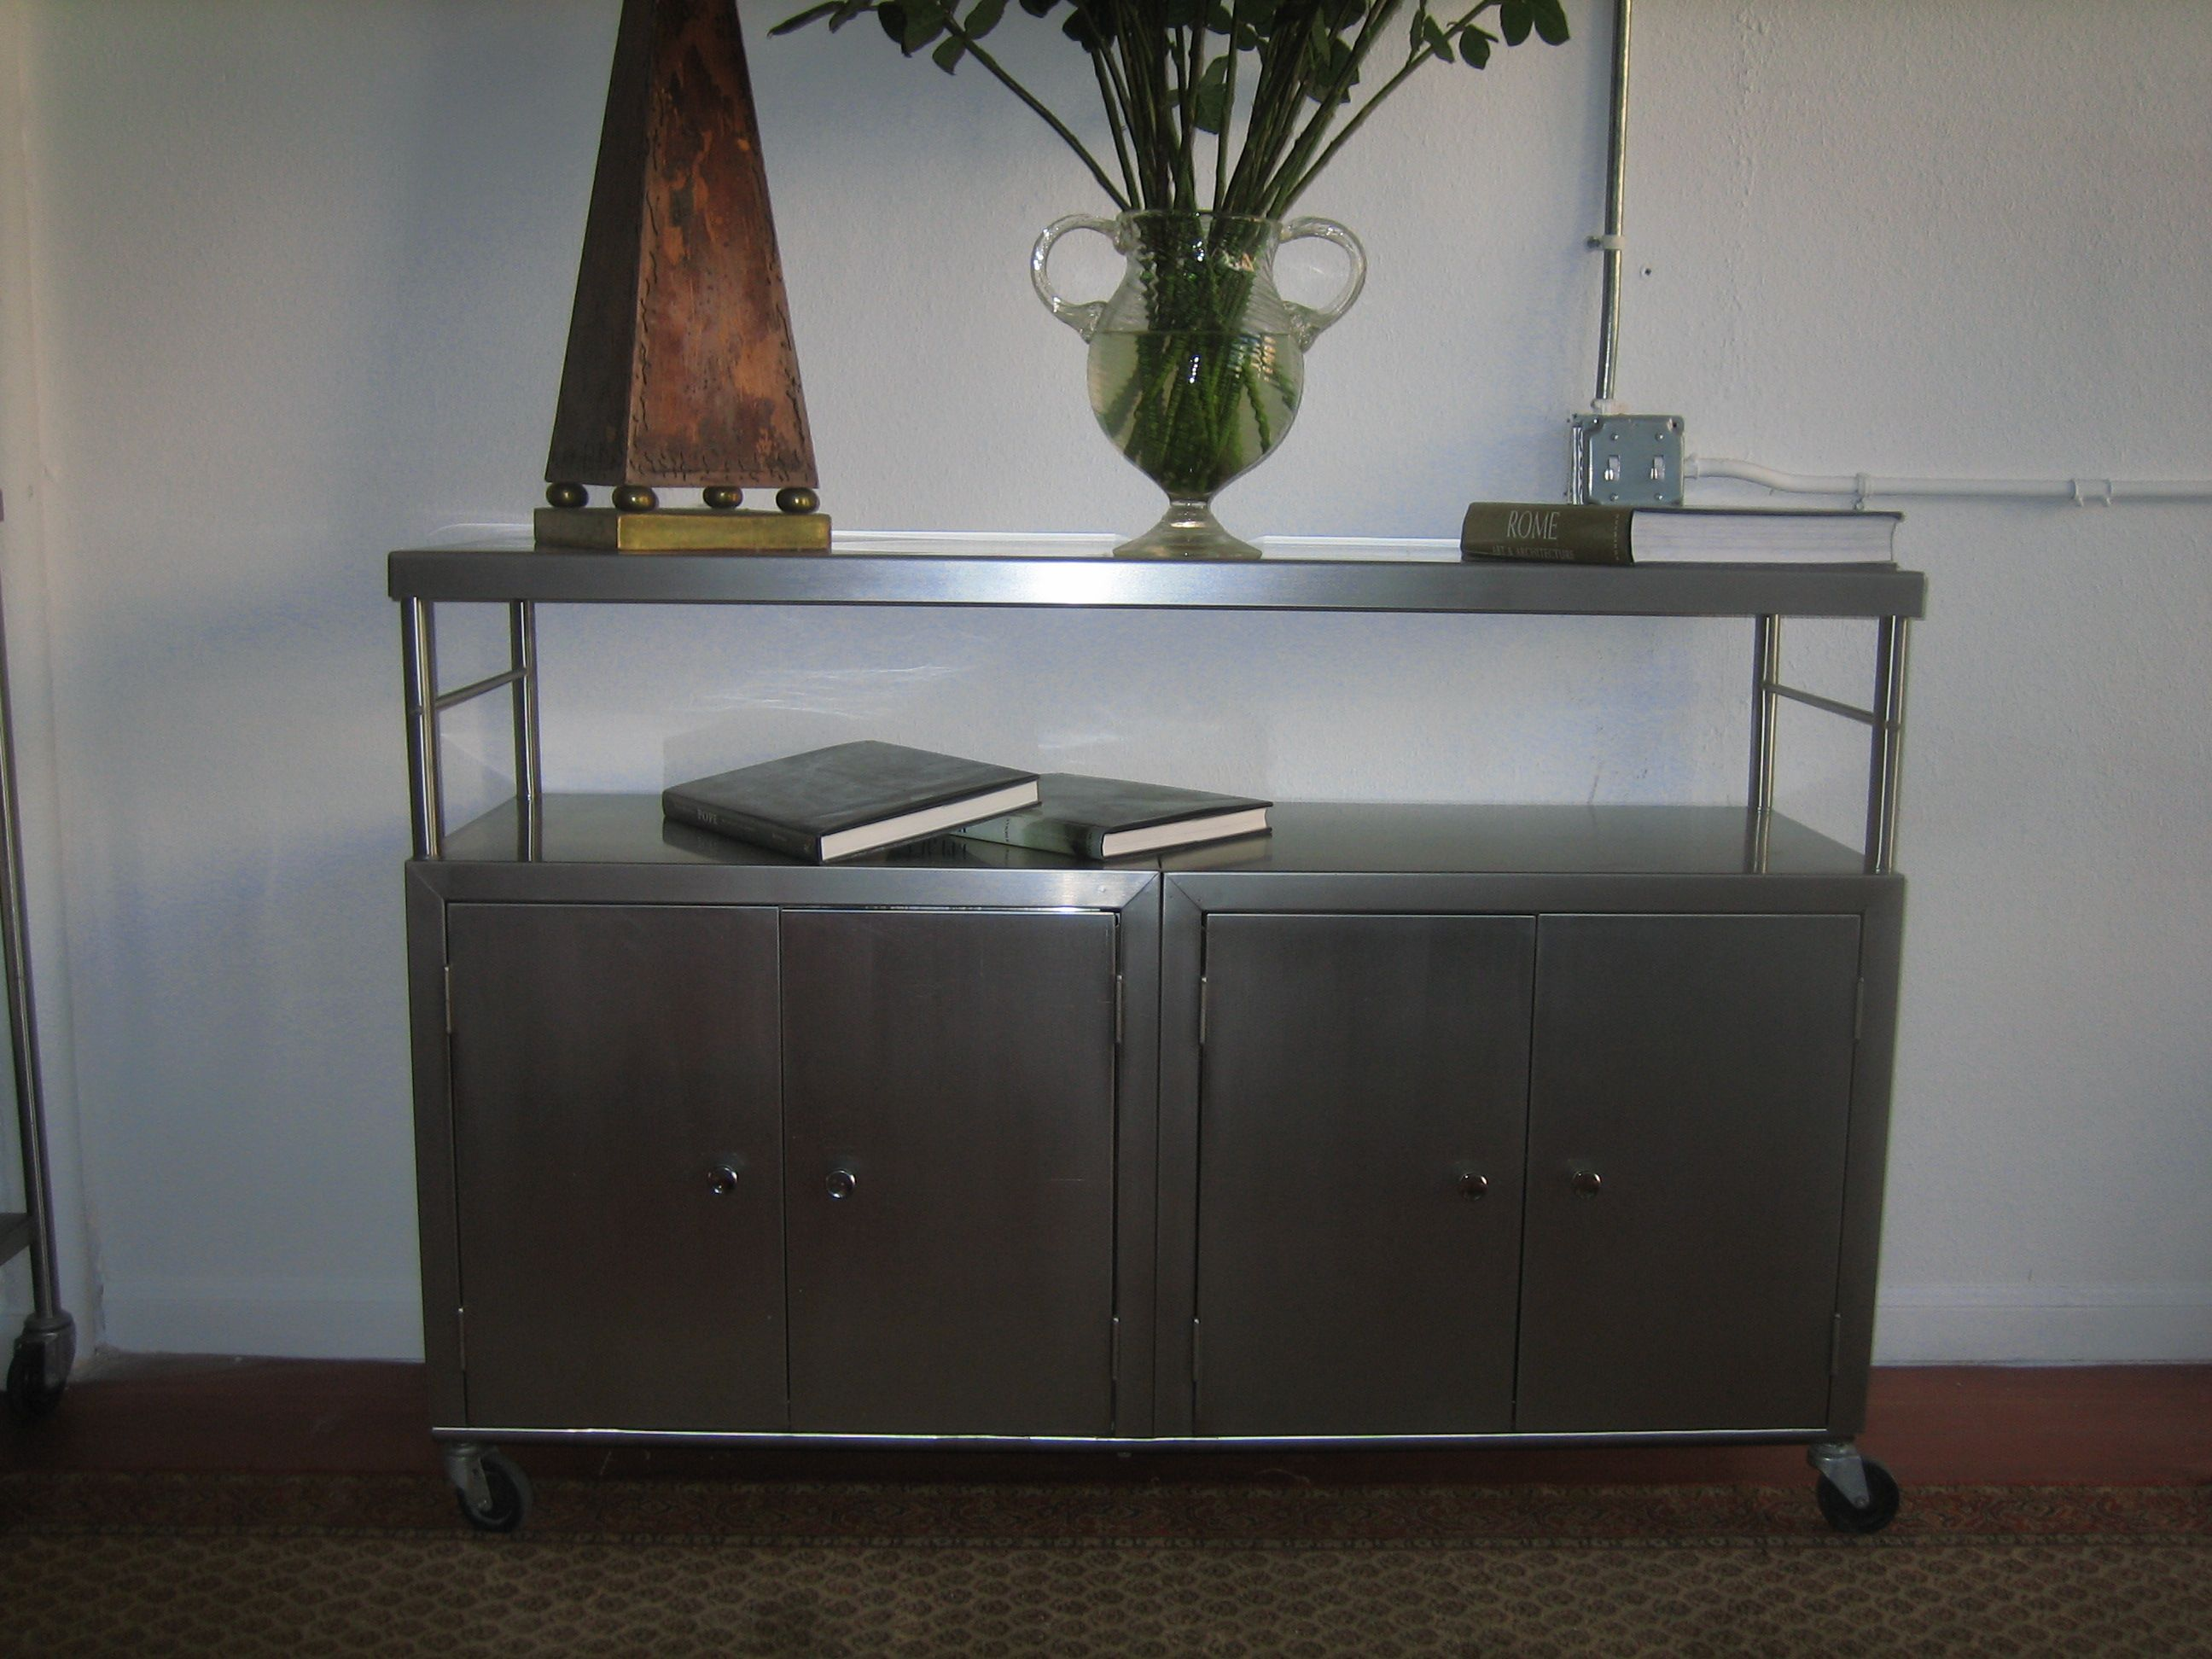 Credenza Industrial Fai Da Te : Another beautiful stainless steel credenza made by industrialists